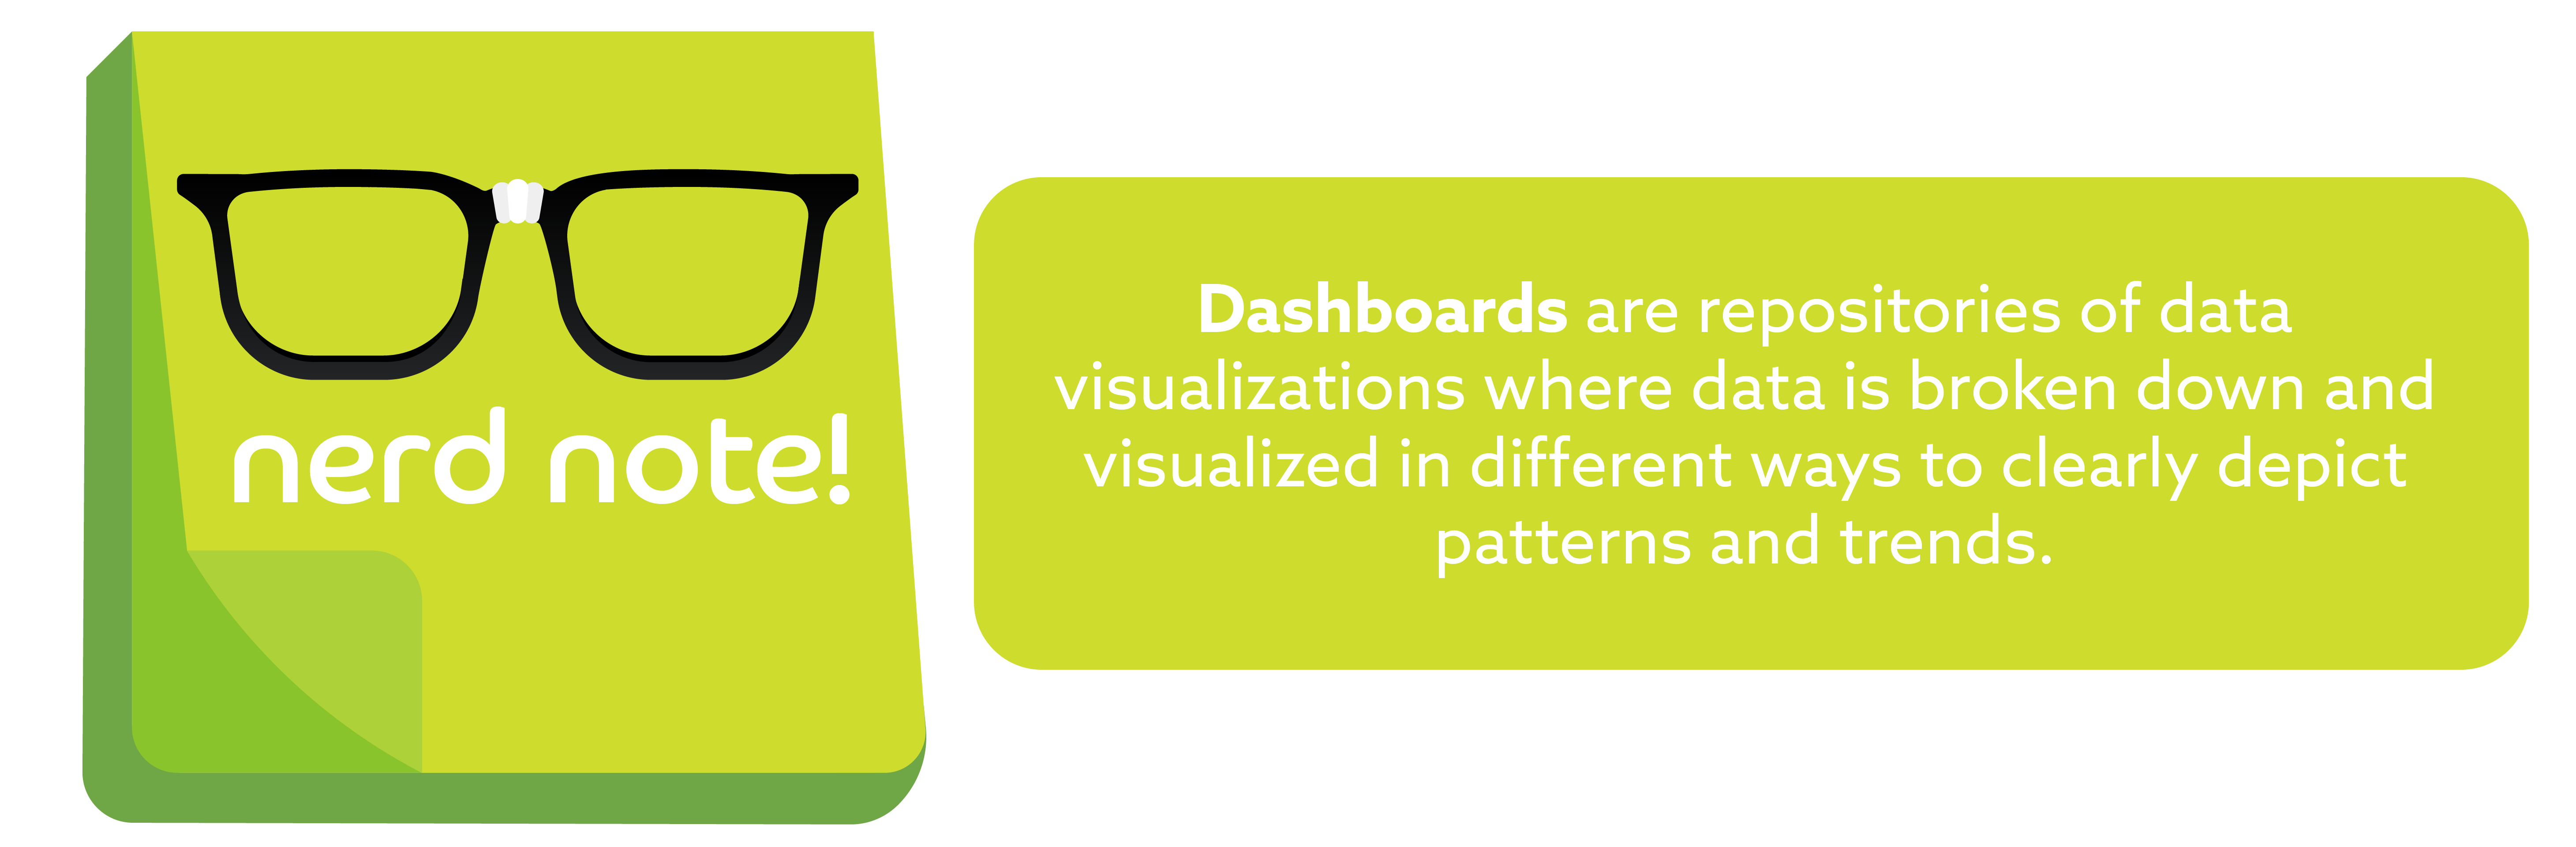 Nerd Note: Dashboards are repositories of data visualizations where data is broken down and visualized in different ways to clearly depict patterns and trends.